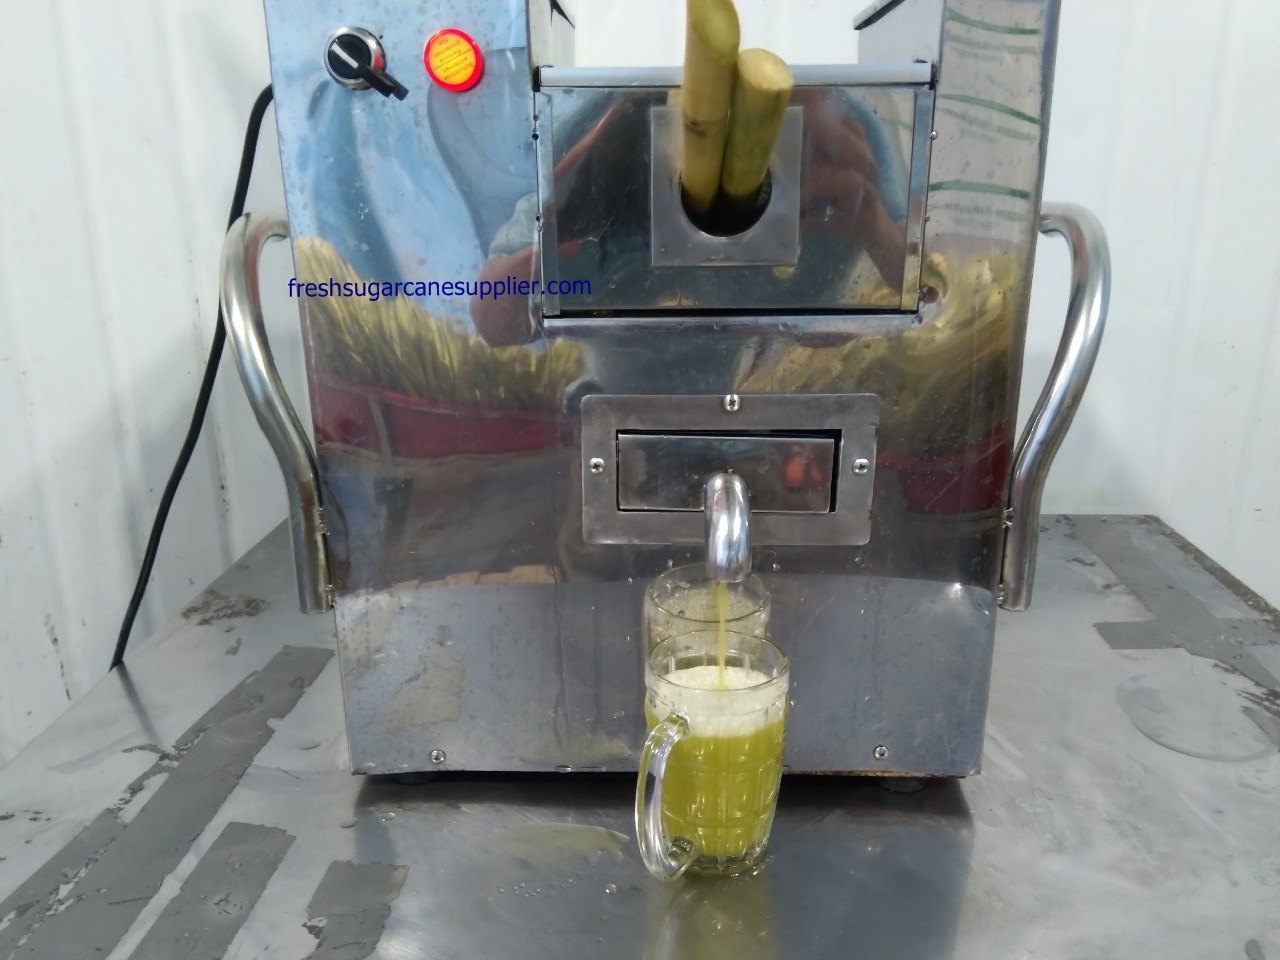 Sugarcane juice in Vietnam